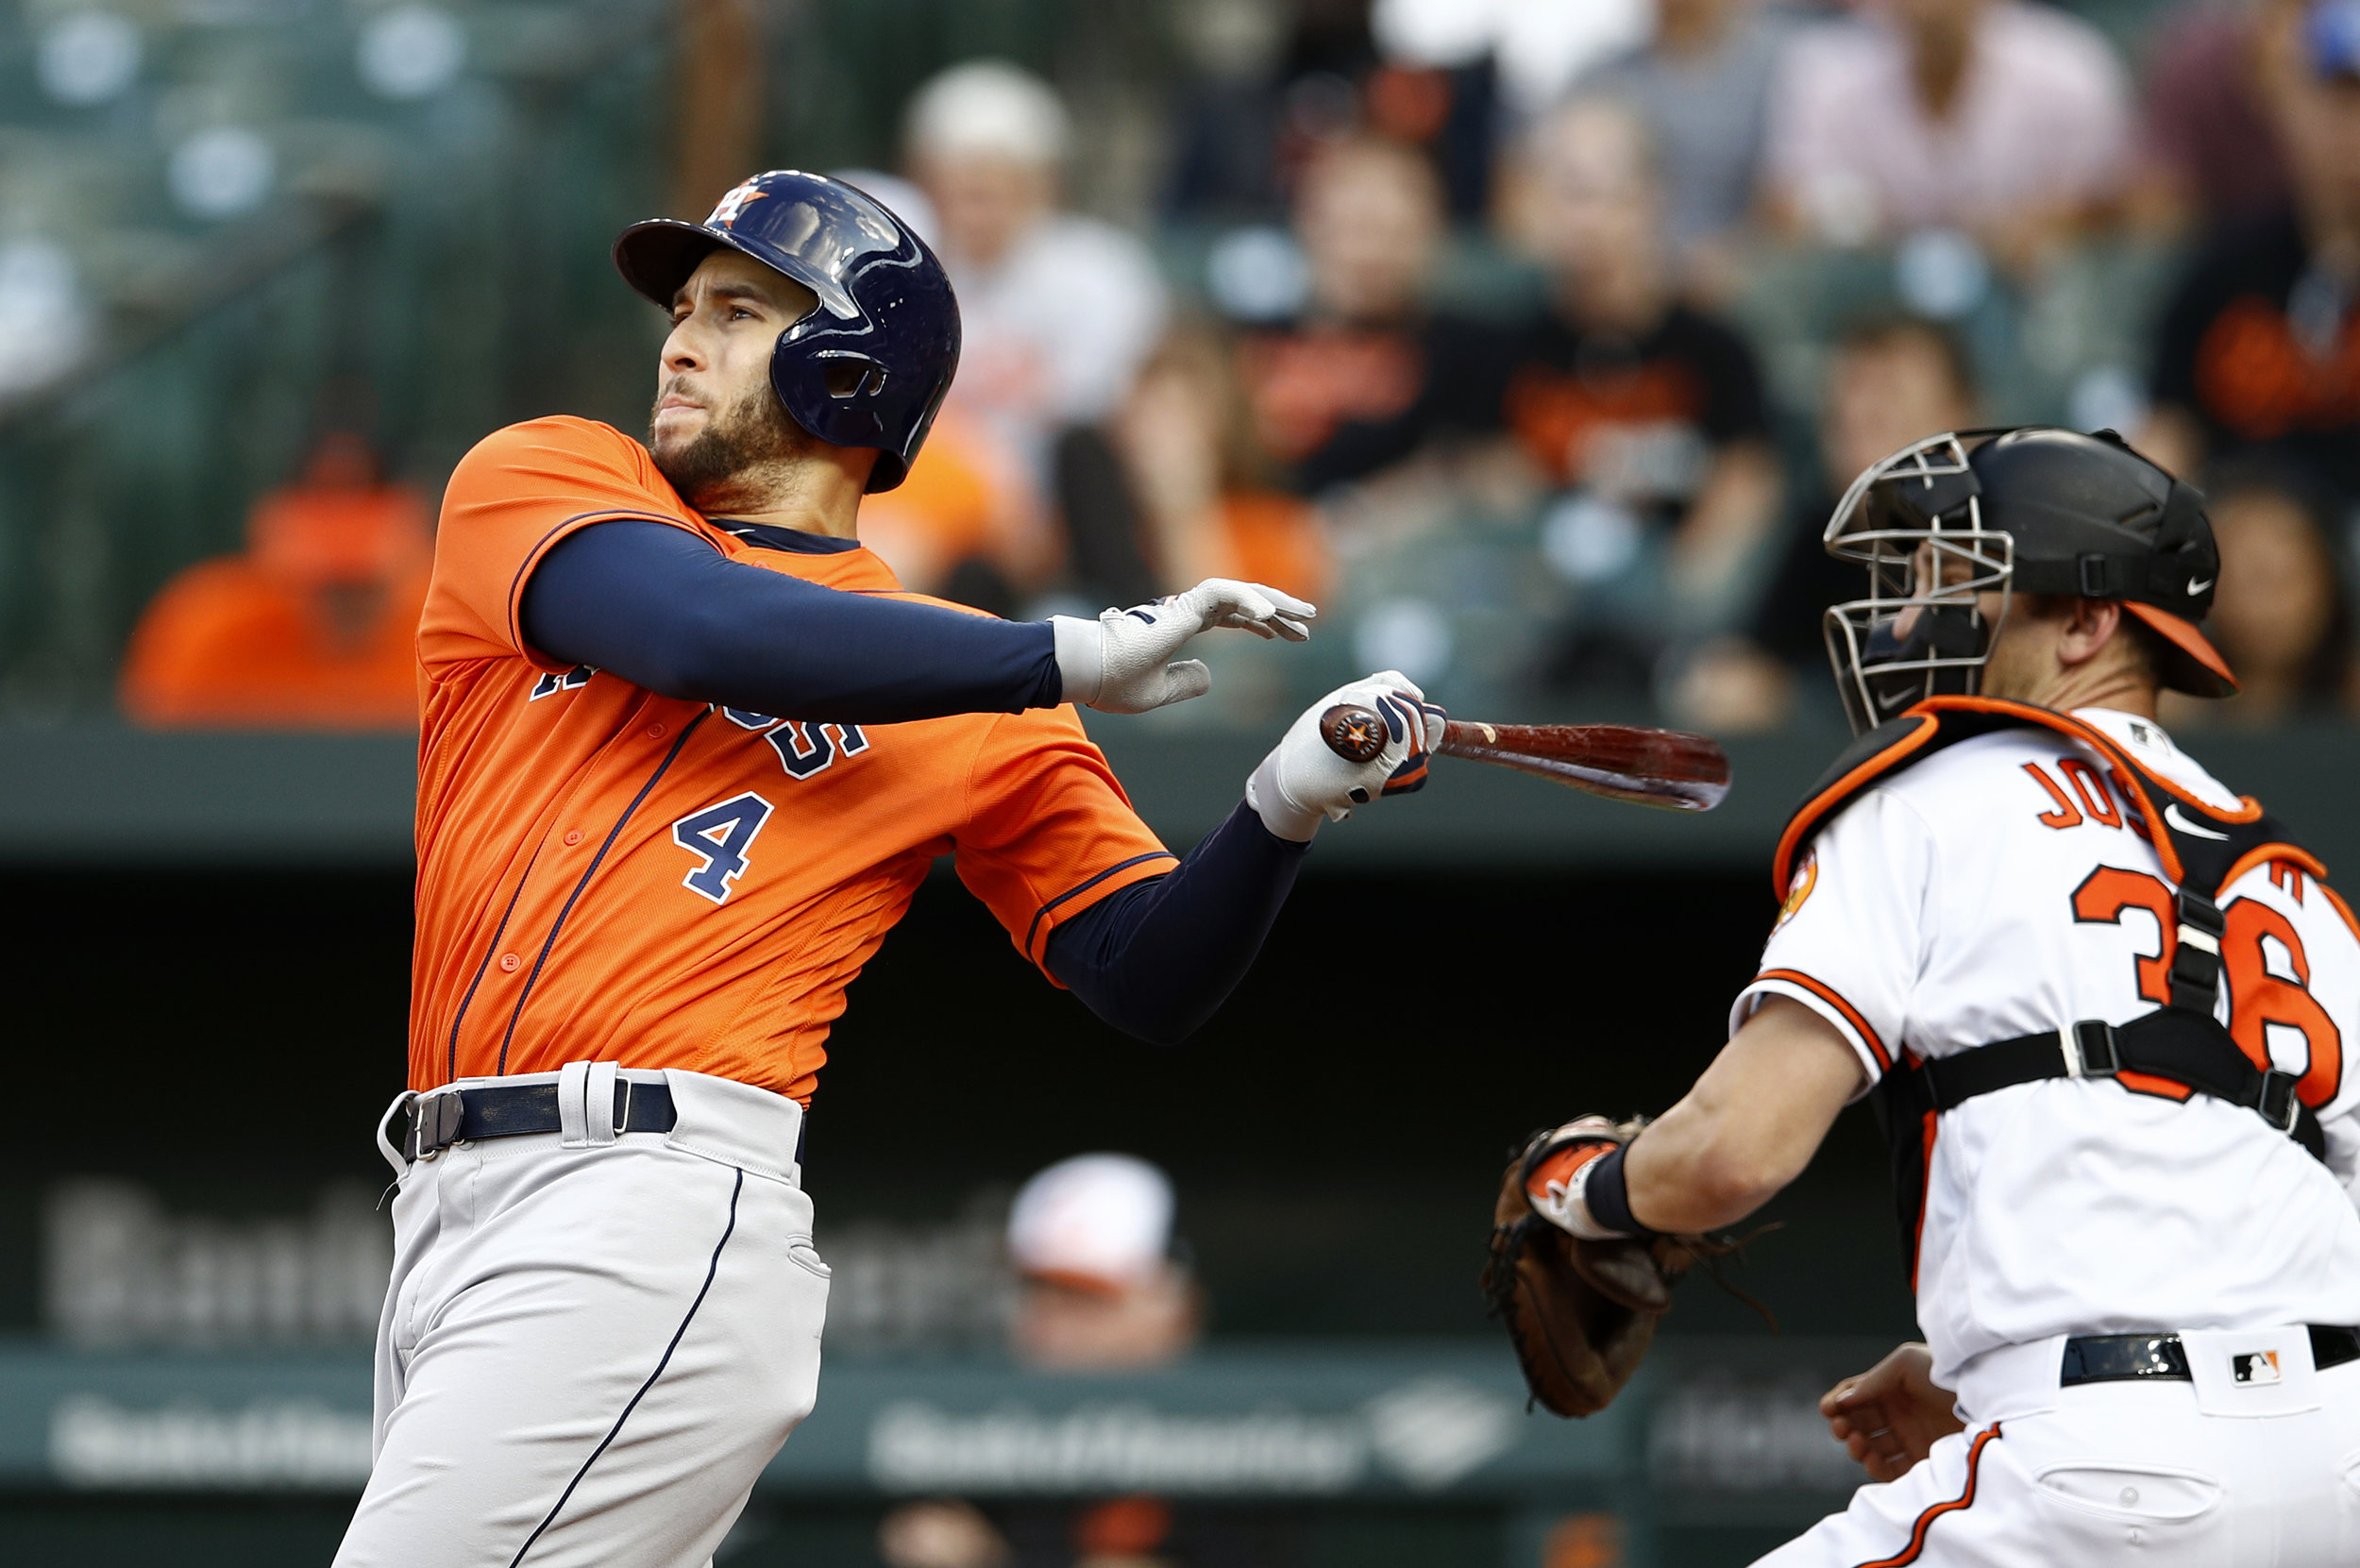 Houston Astros' George Springer hits a two-run home run in front of Baltimore Orioles catcher Caleb Joseph in the sixth inning of the first baseball game of a doubleheader on Saturday, Sept. 29 in Baltimore. (Patrick Semansky/AP)